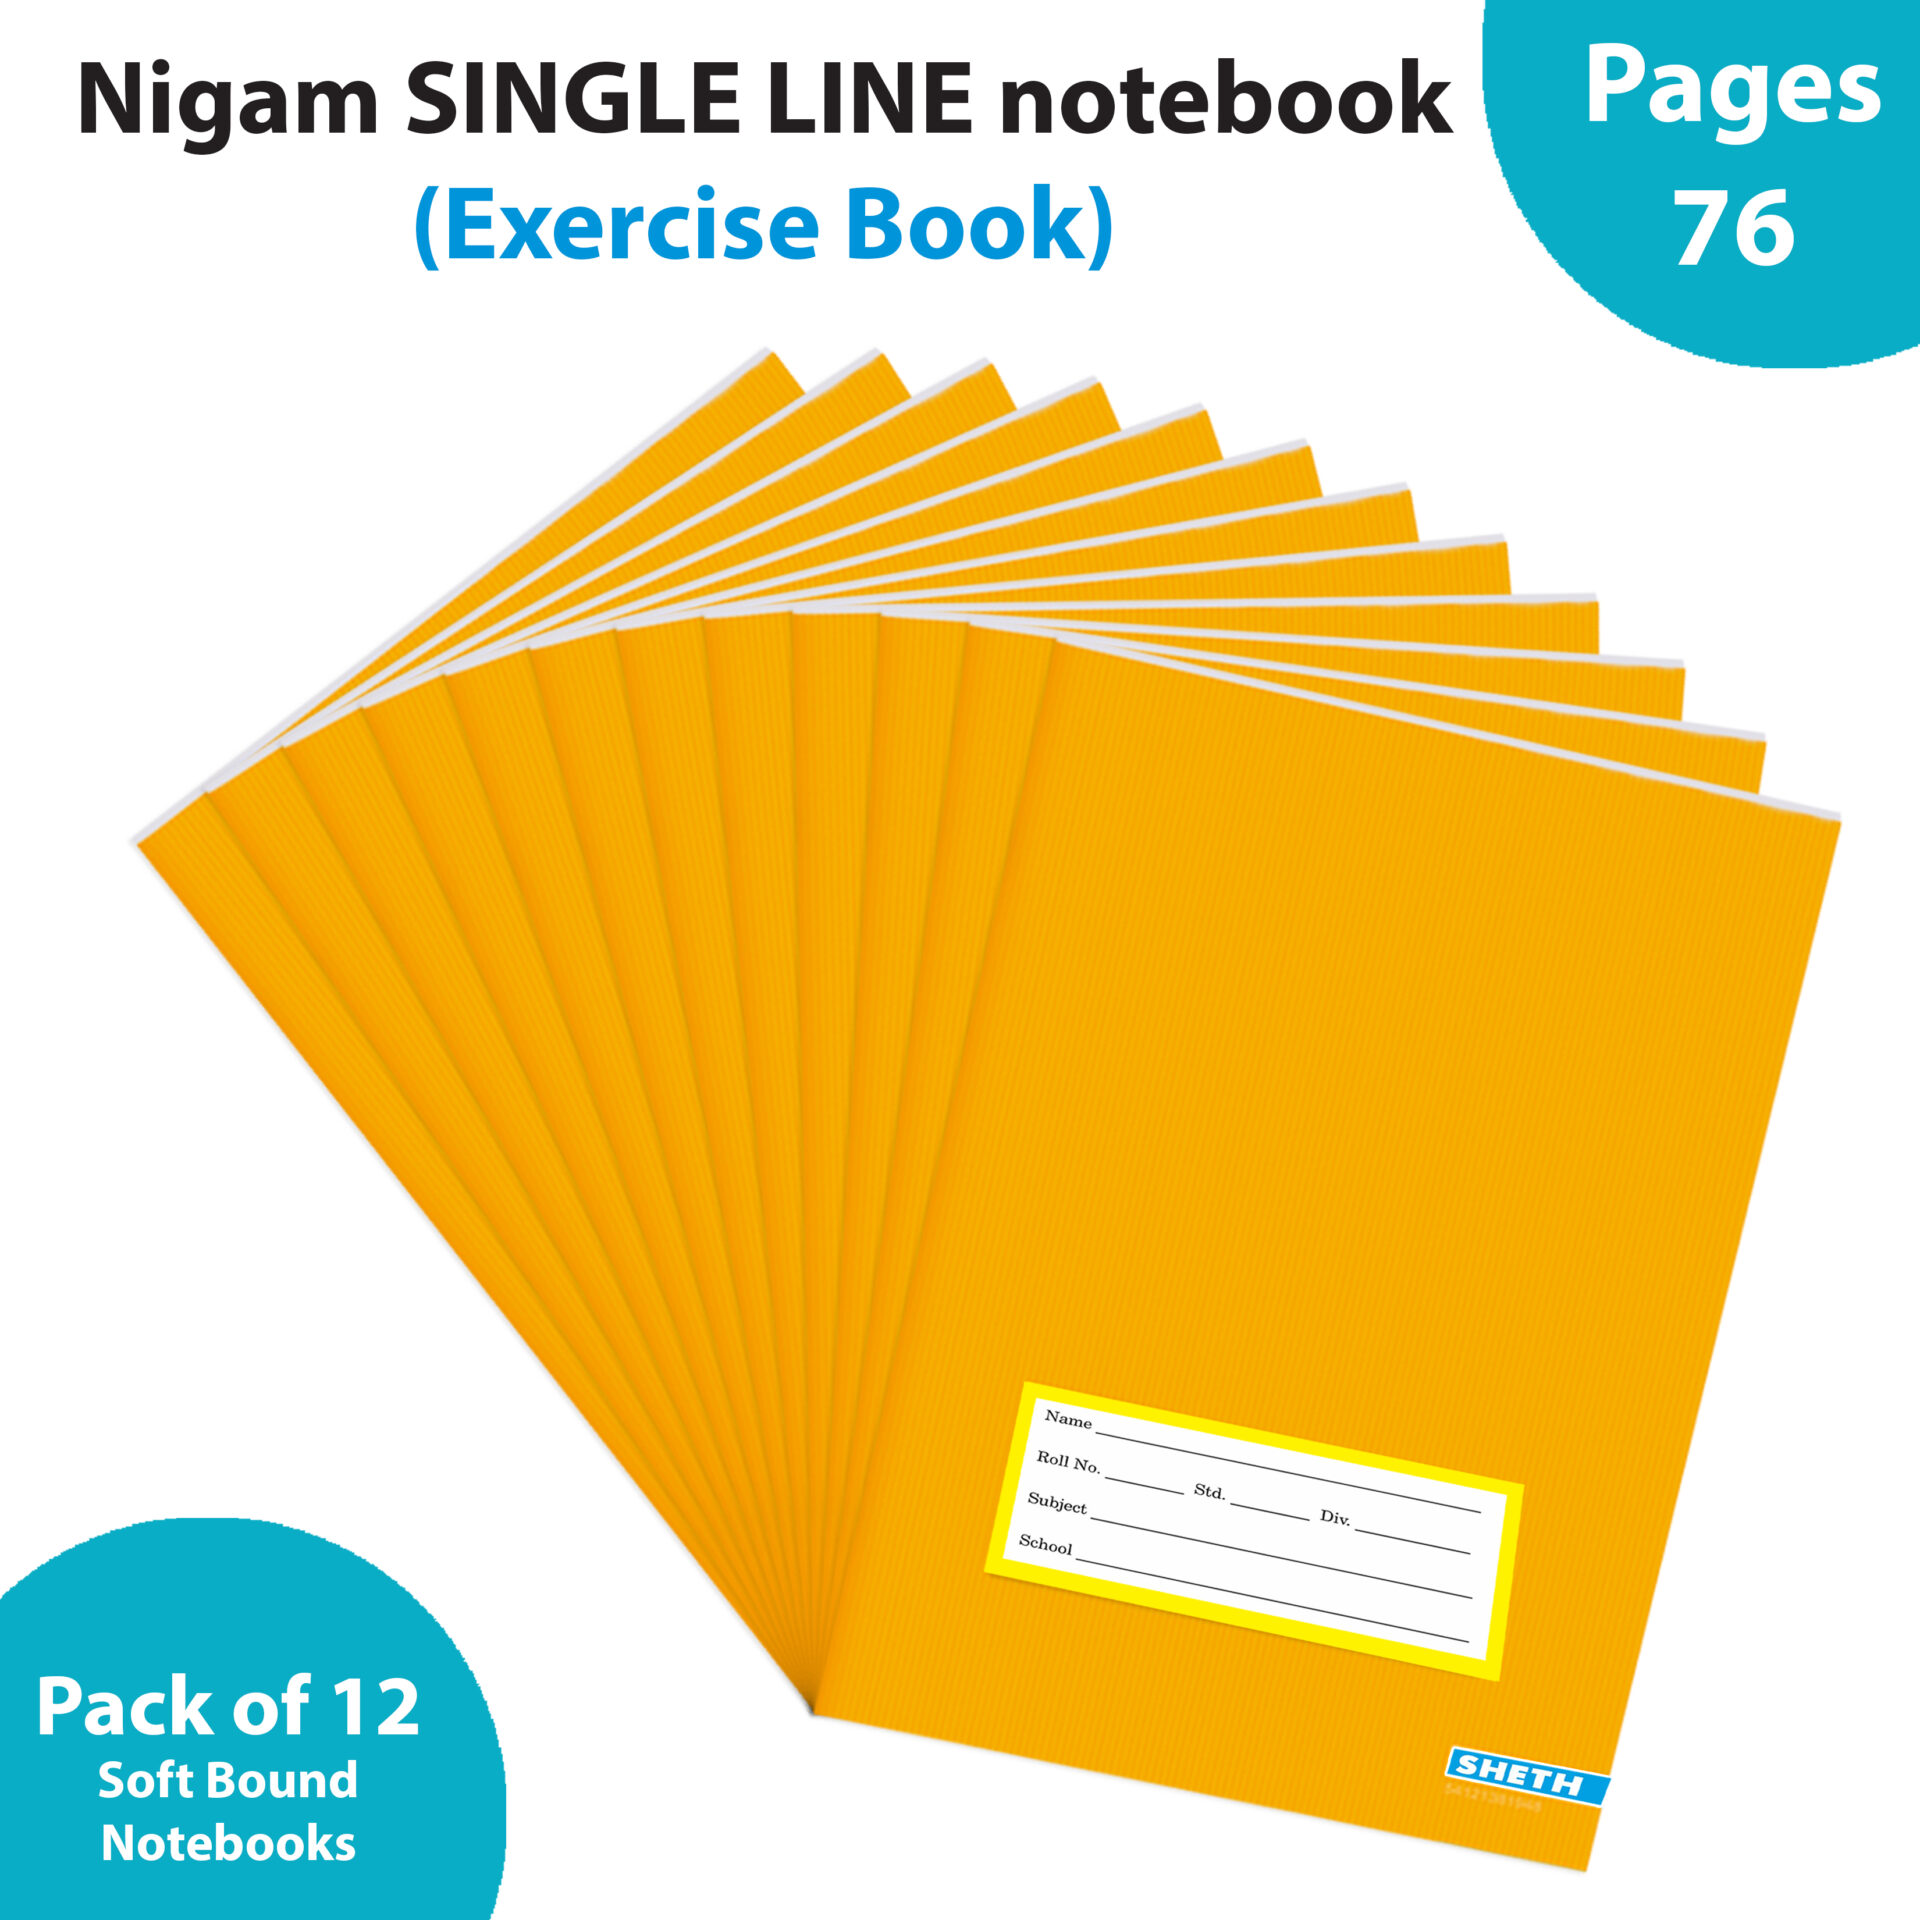 Nigam Single Line A5 Note Book 76 Pages Soft Bound Set of 12 1